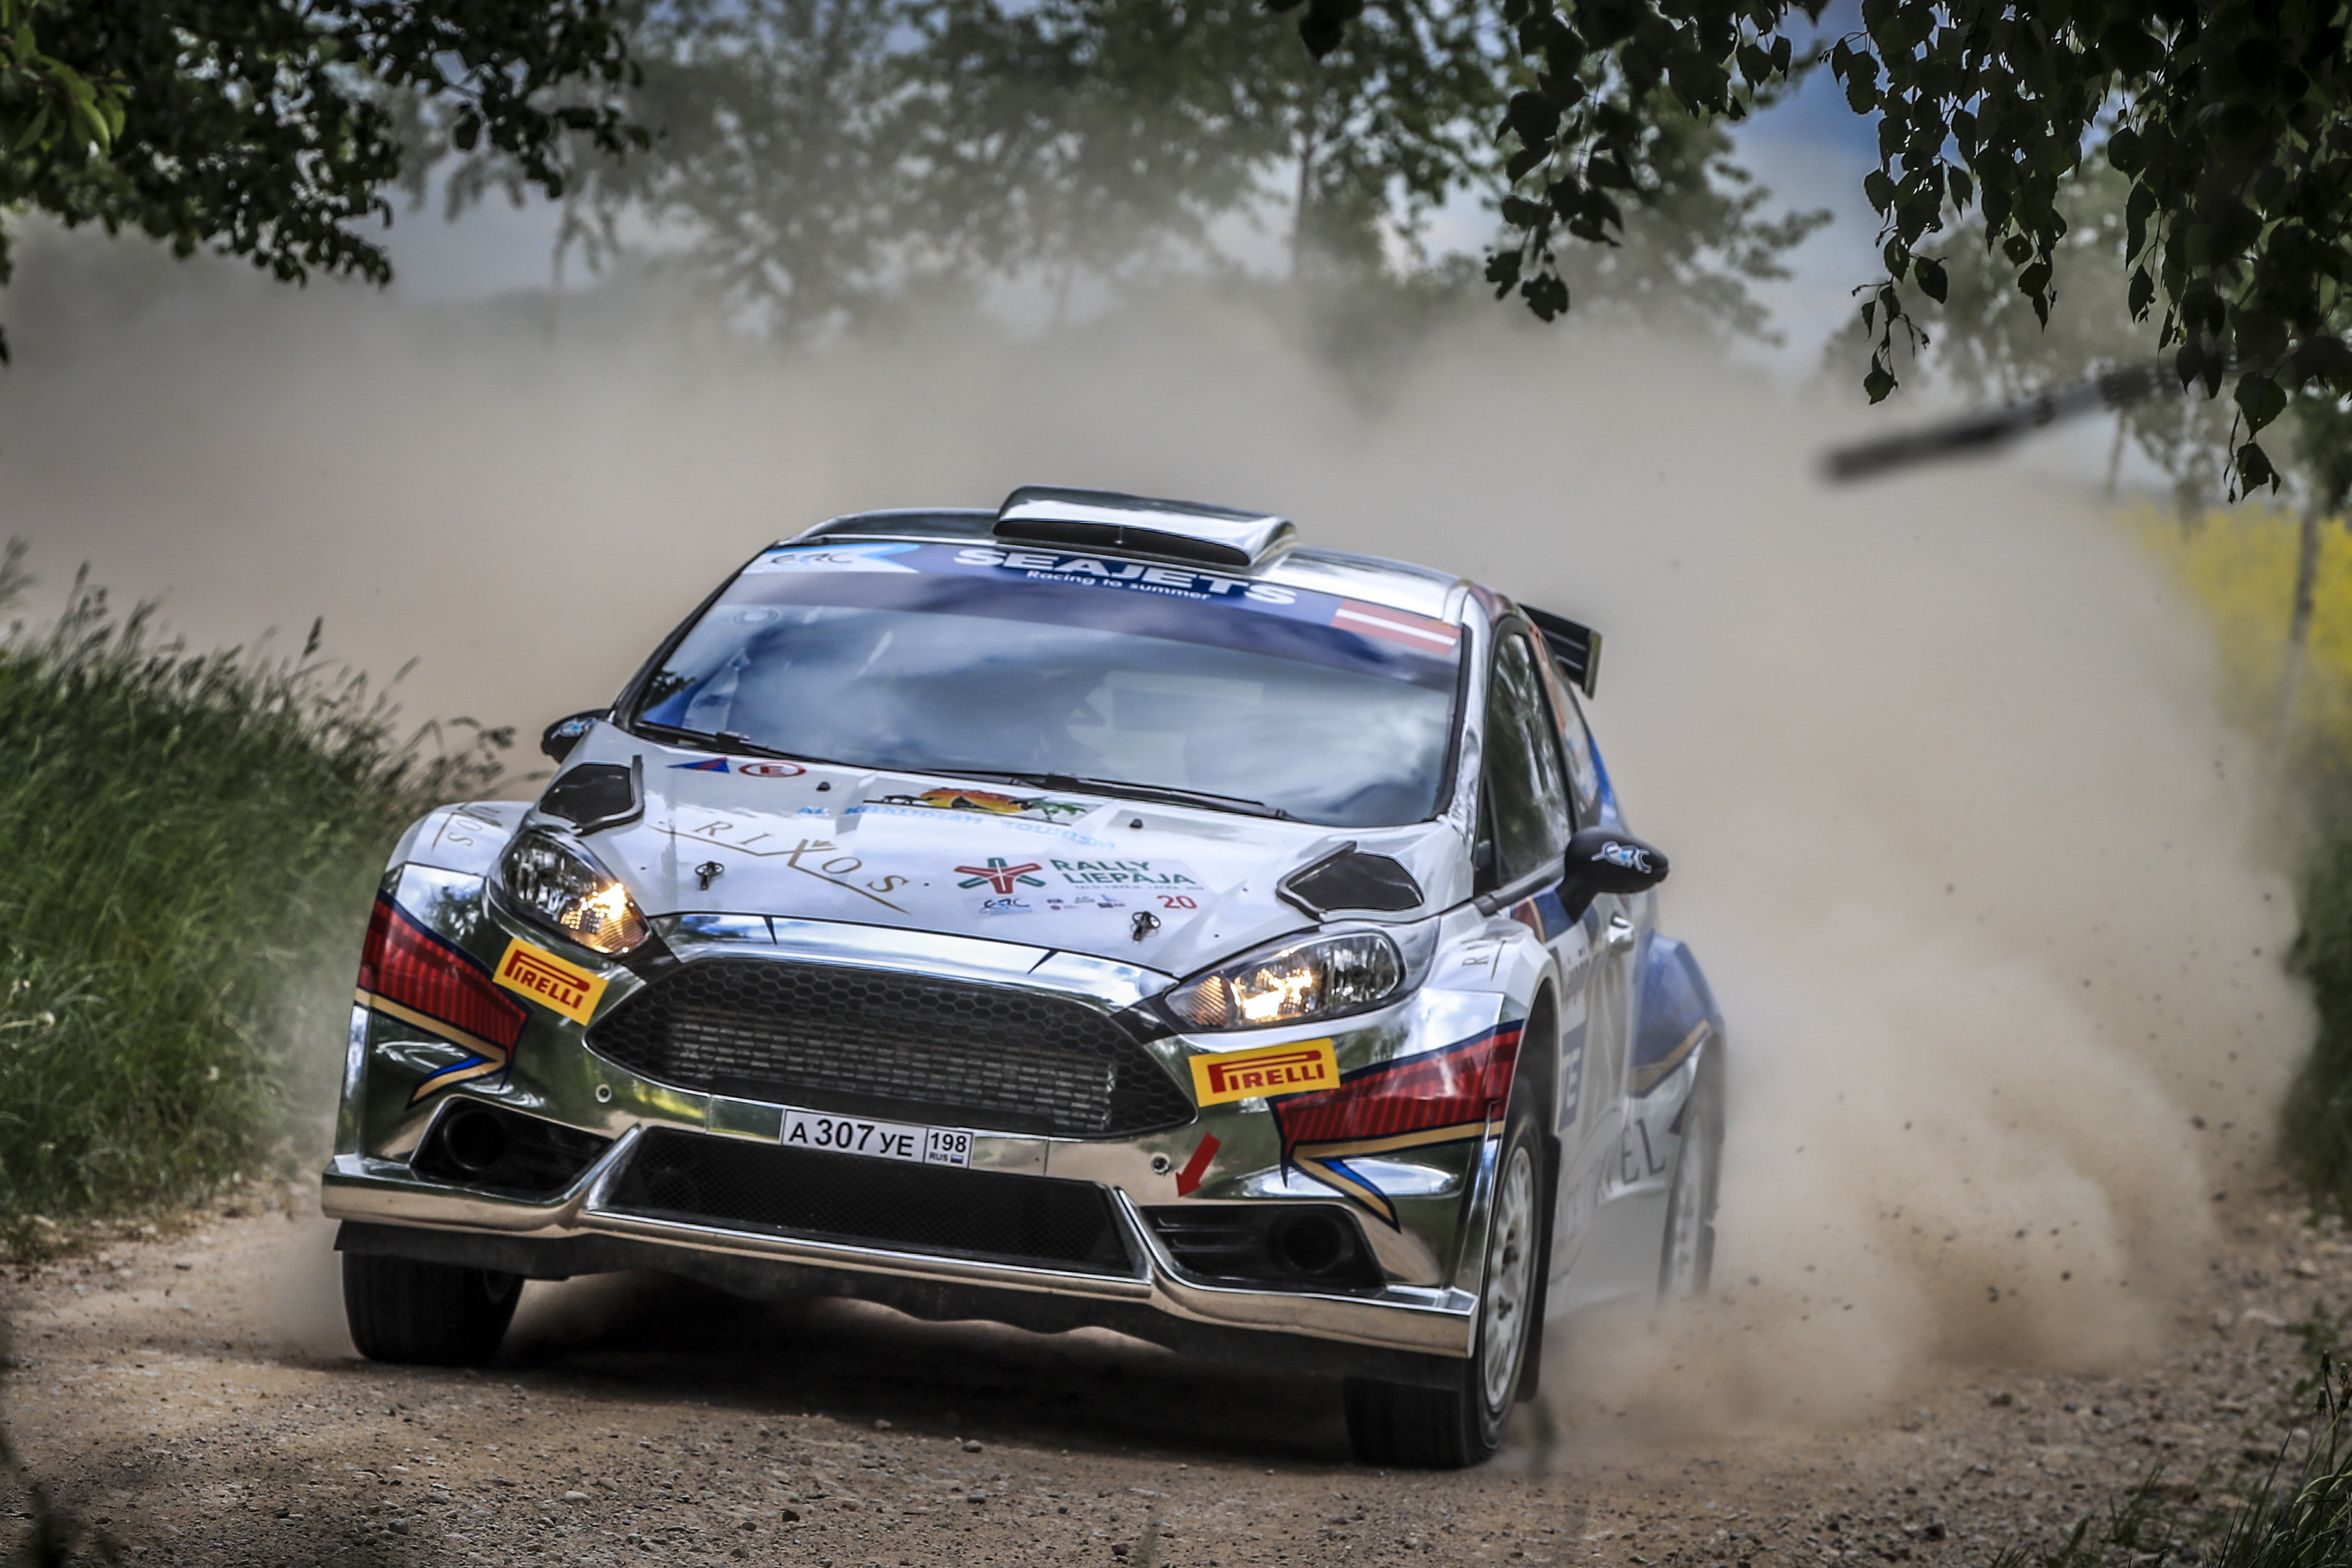 20 Artur MURADIAN, (RUS), Pavel CHELEBAEV , (RUS), Ford Fiesta R5, action during the 2019 European Rally Championship ERC Liepaja rally,  from may 24 to 26, at Liepaja, Lettonie - Photo Gregory Lenormand / DPPI